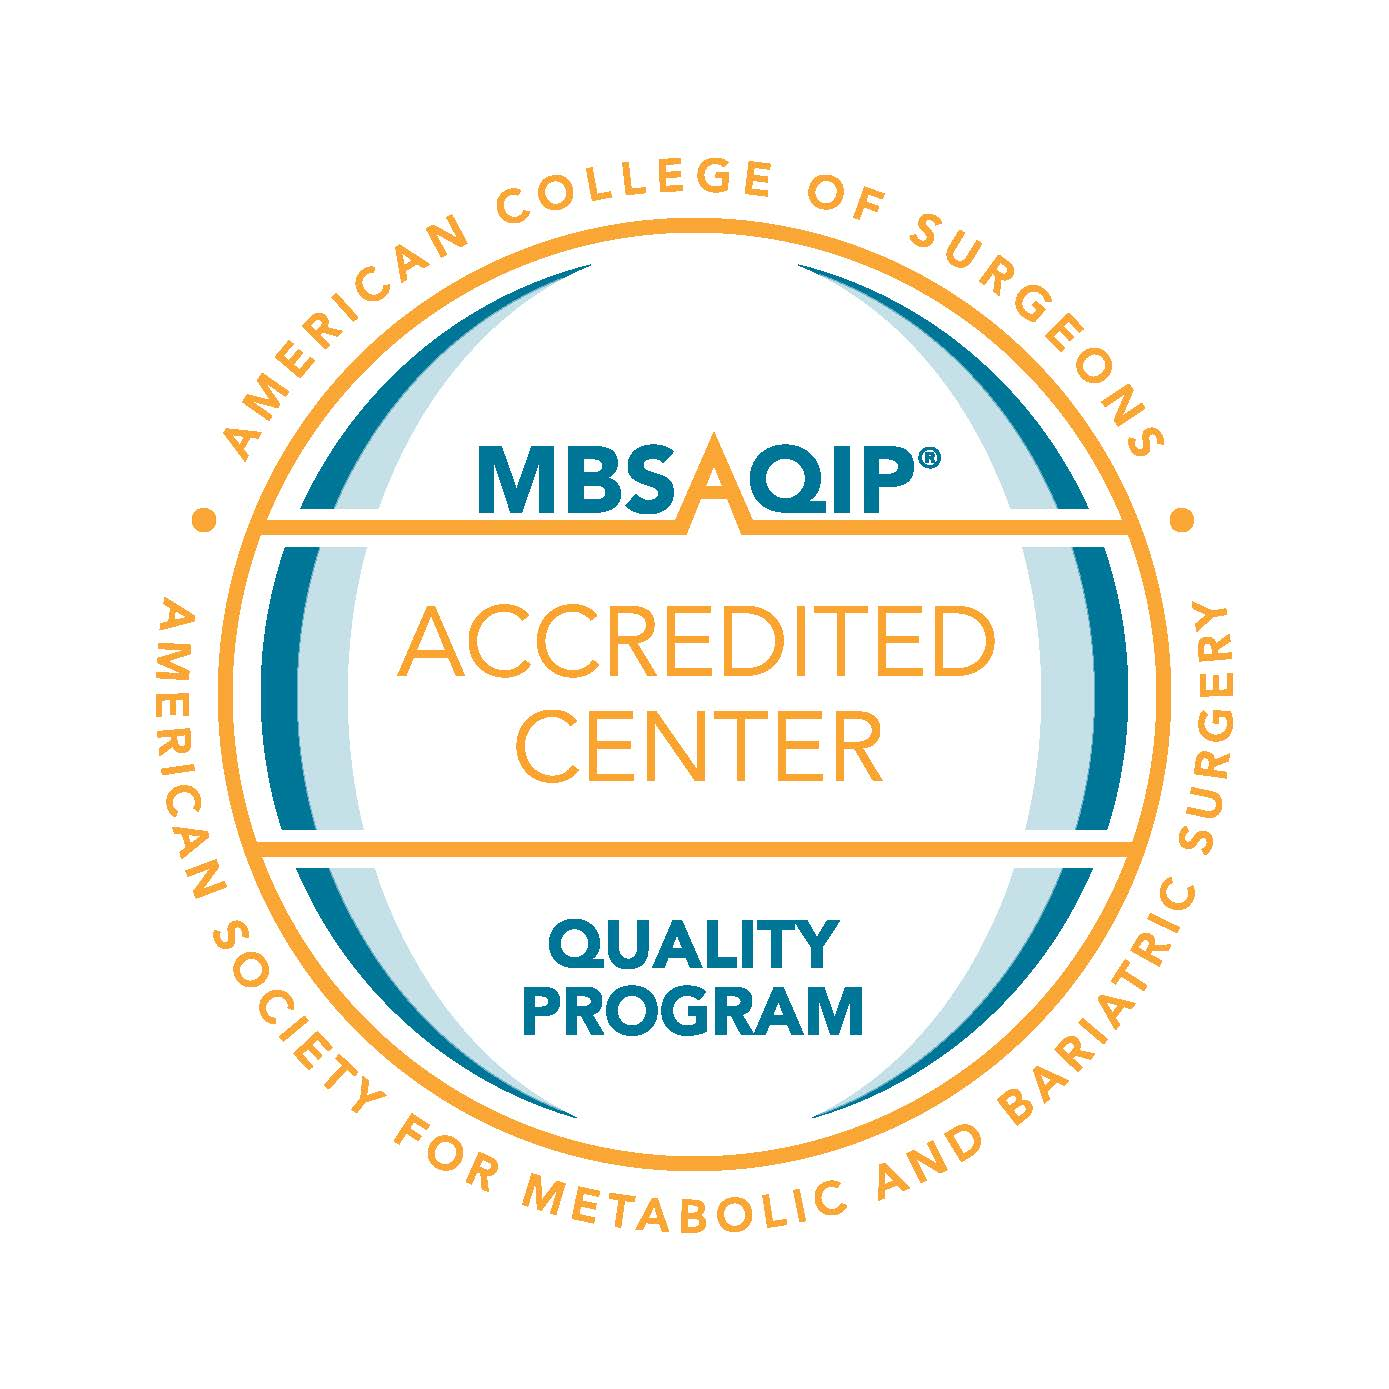 Metabolic and Bariatric Surgery Accreditation and Quality Improvement Program Accredited Center (MBSQIP)